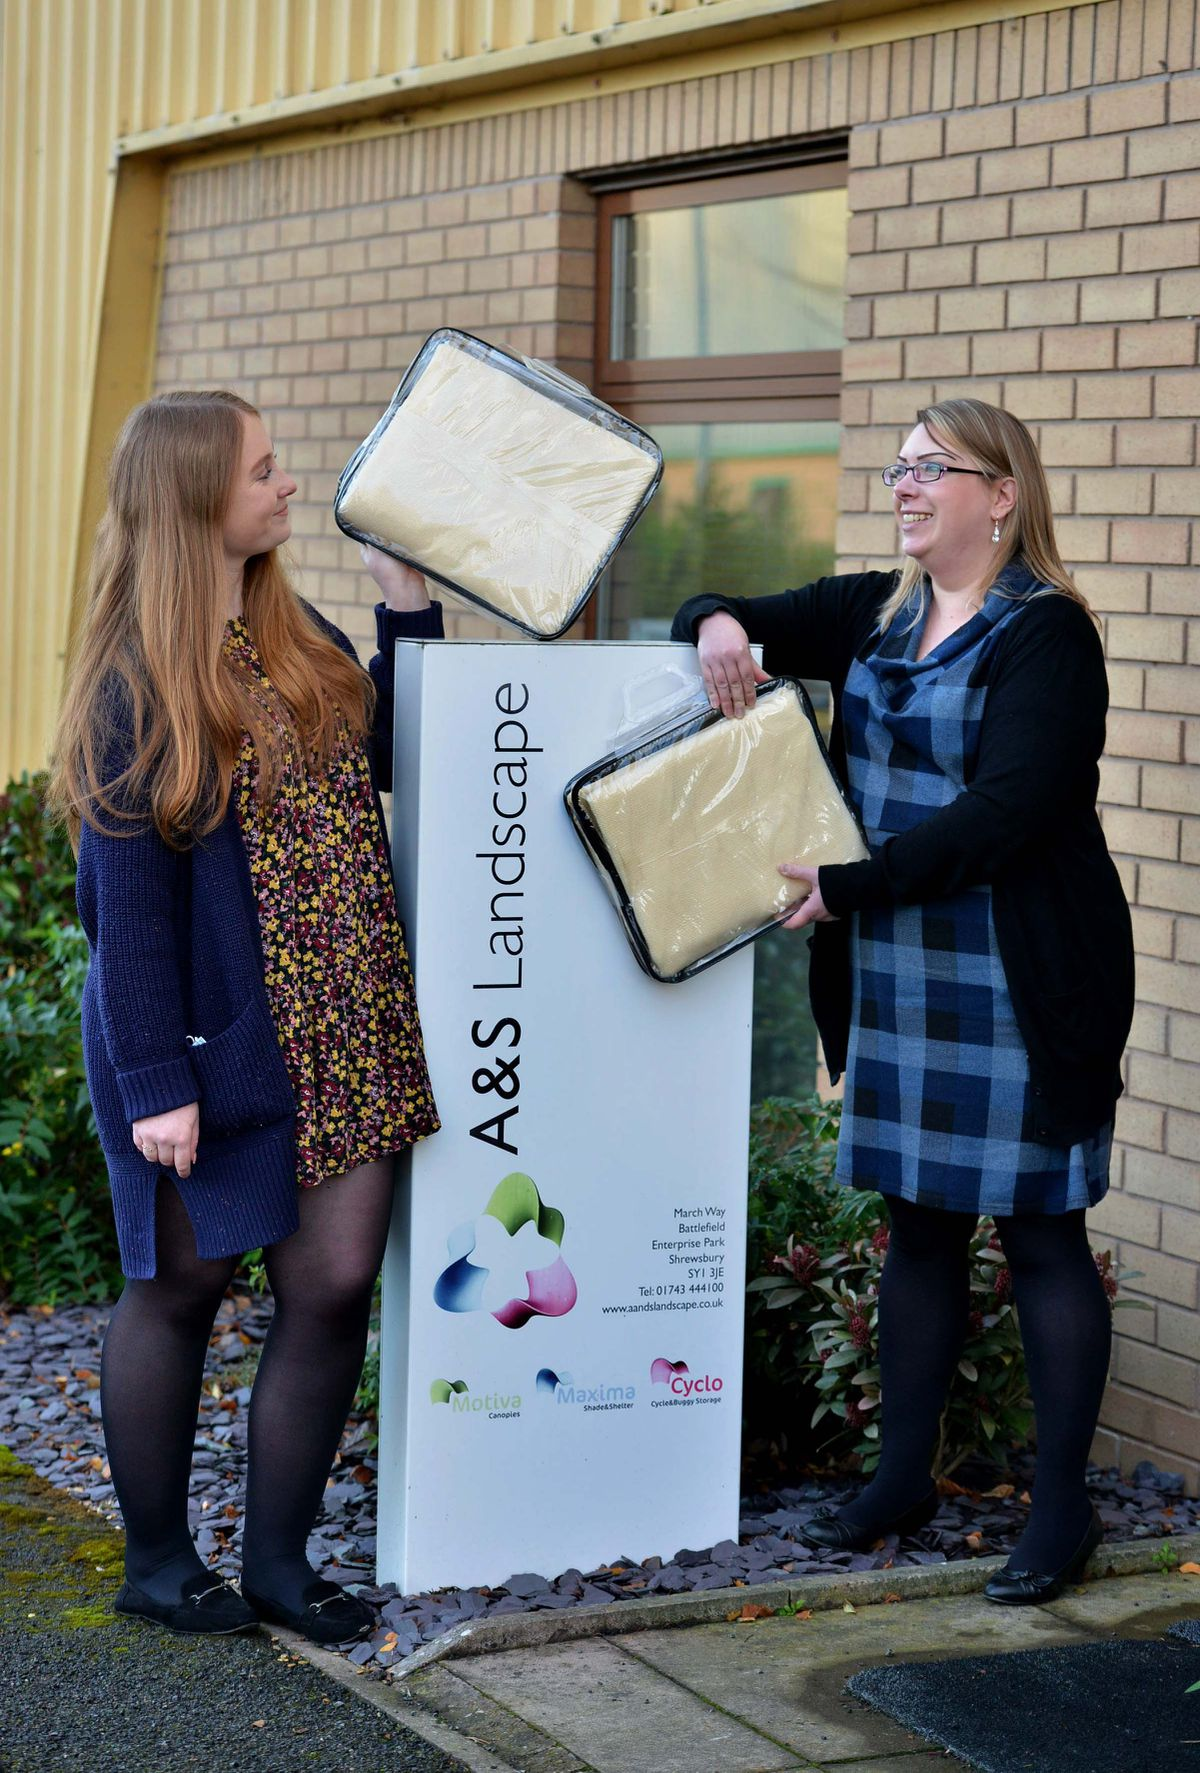 Lucy Grime and Victoria Scott-Ison of Shrewsbury-based A&S Landscape